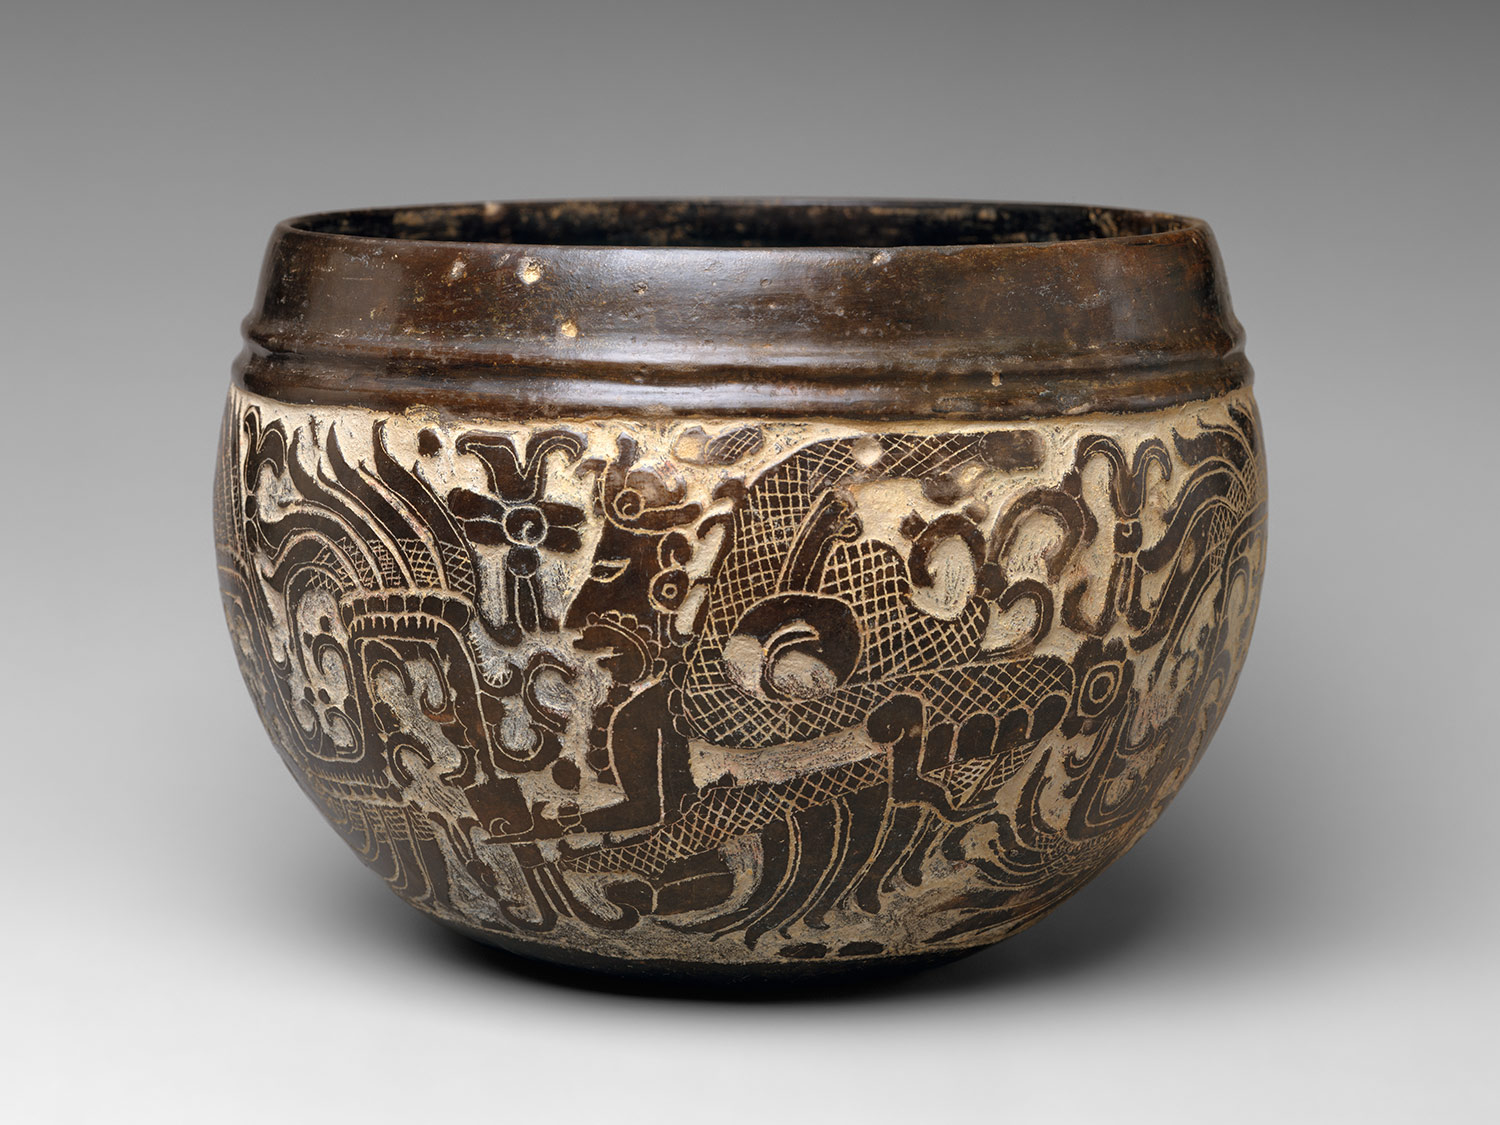 carved bowl 6th century